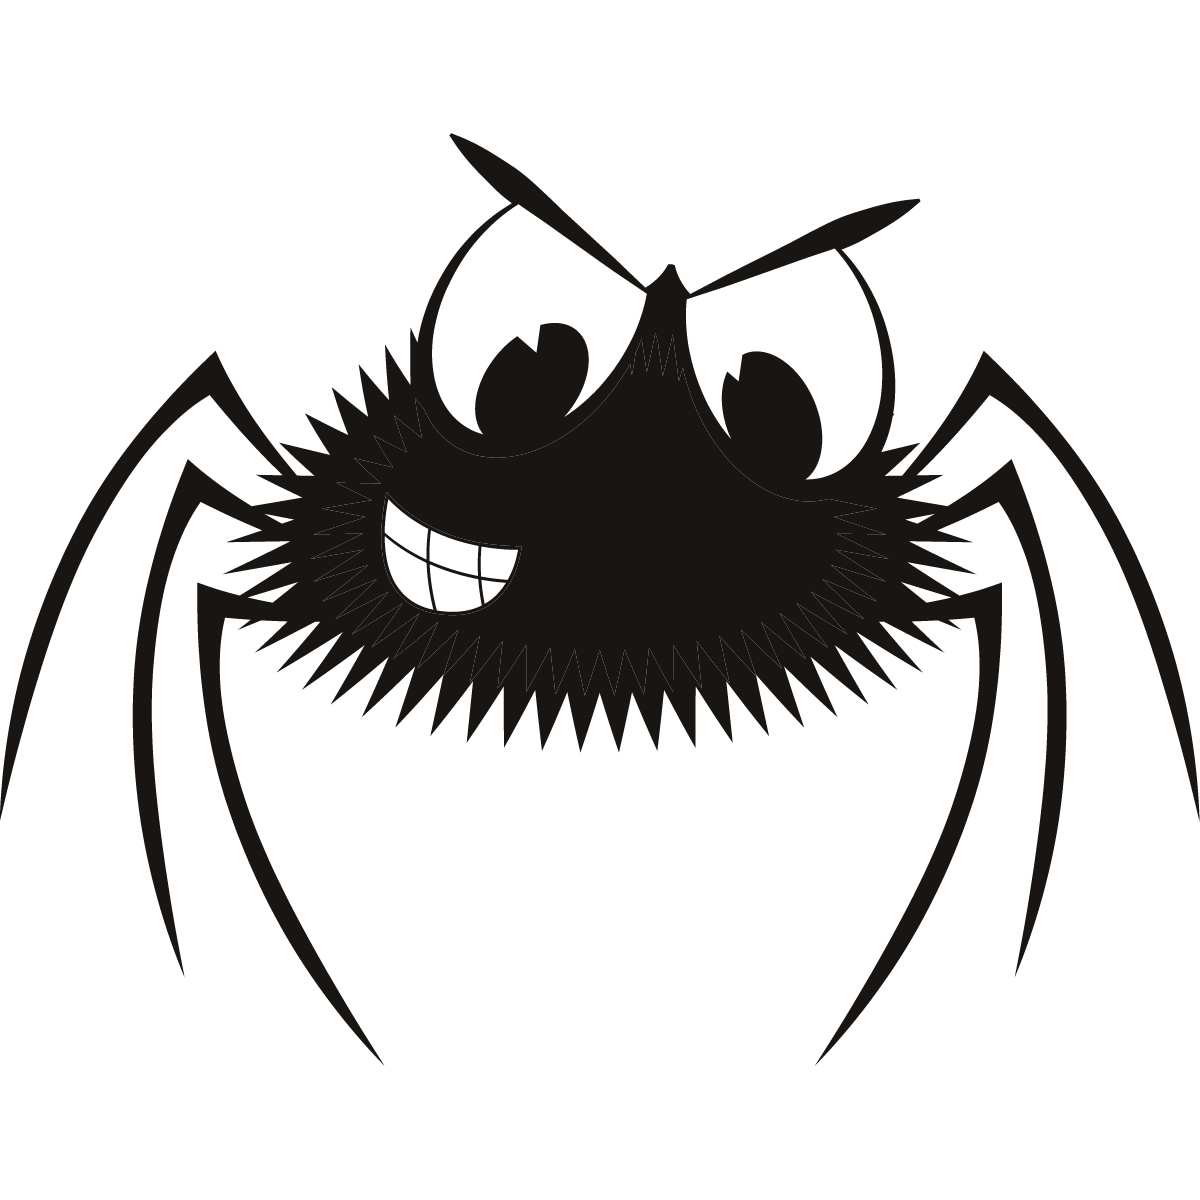 Free Cartoon Spider Pics, Download Free Clip Art, Free